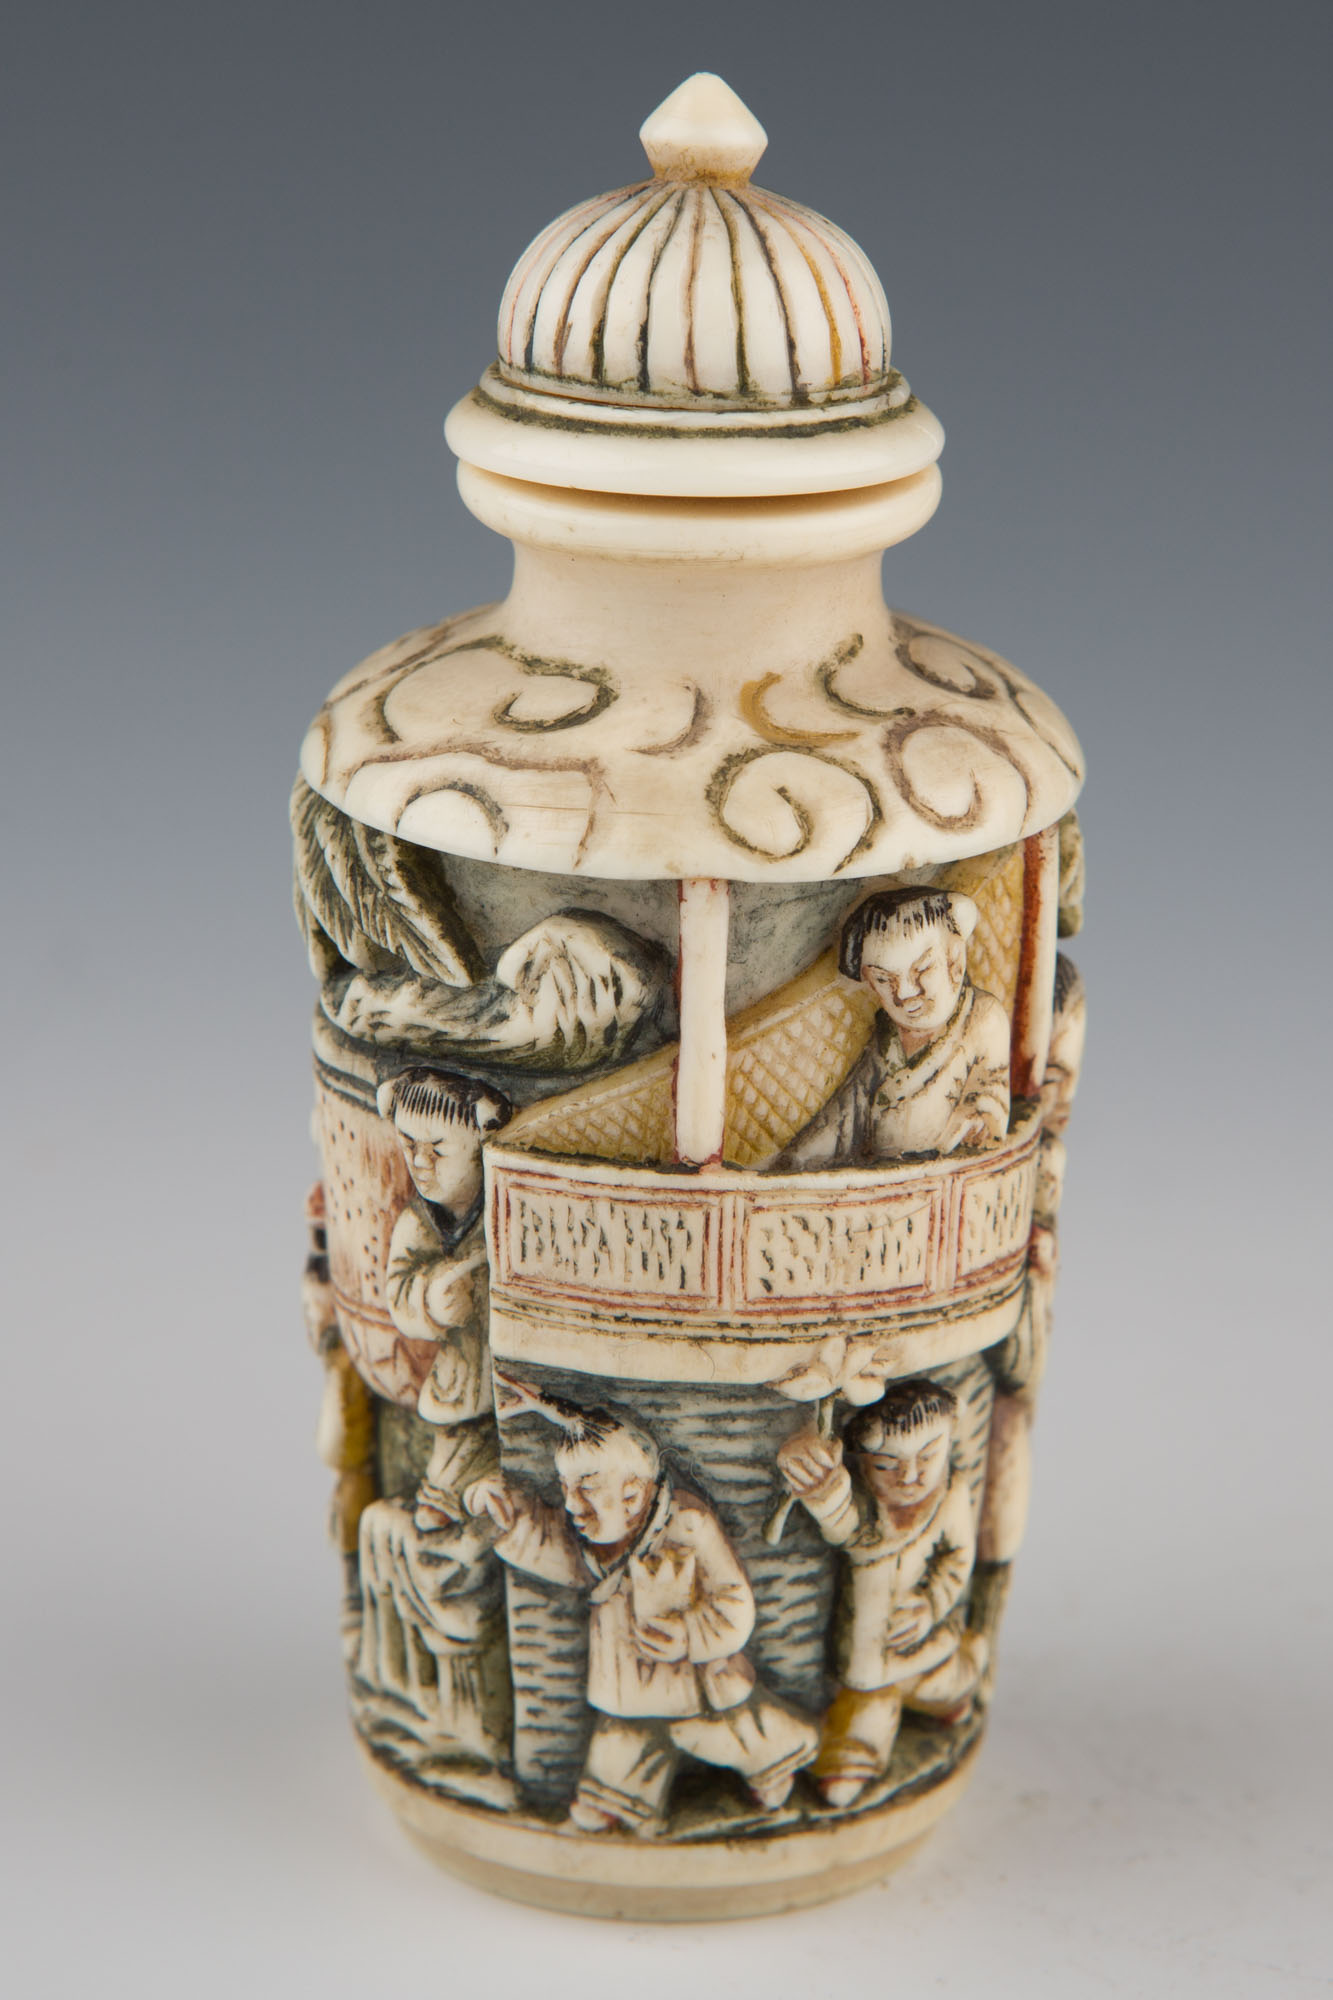 An ivory carved snuff bottle, 1800-1900.